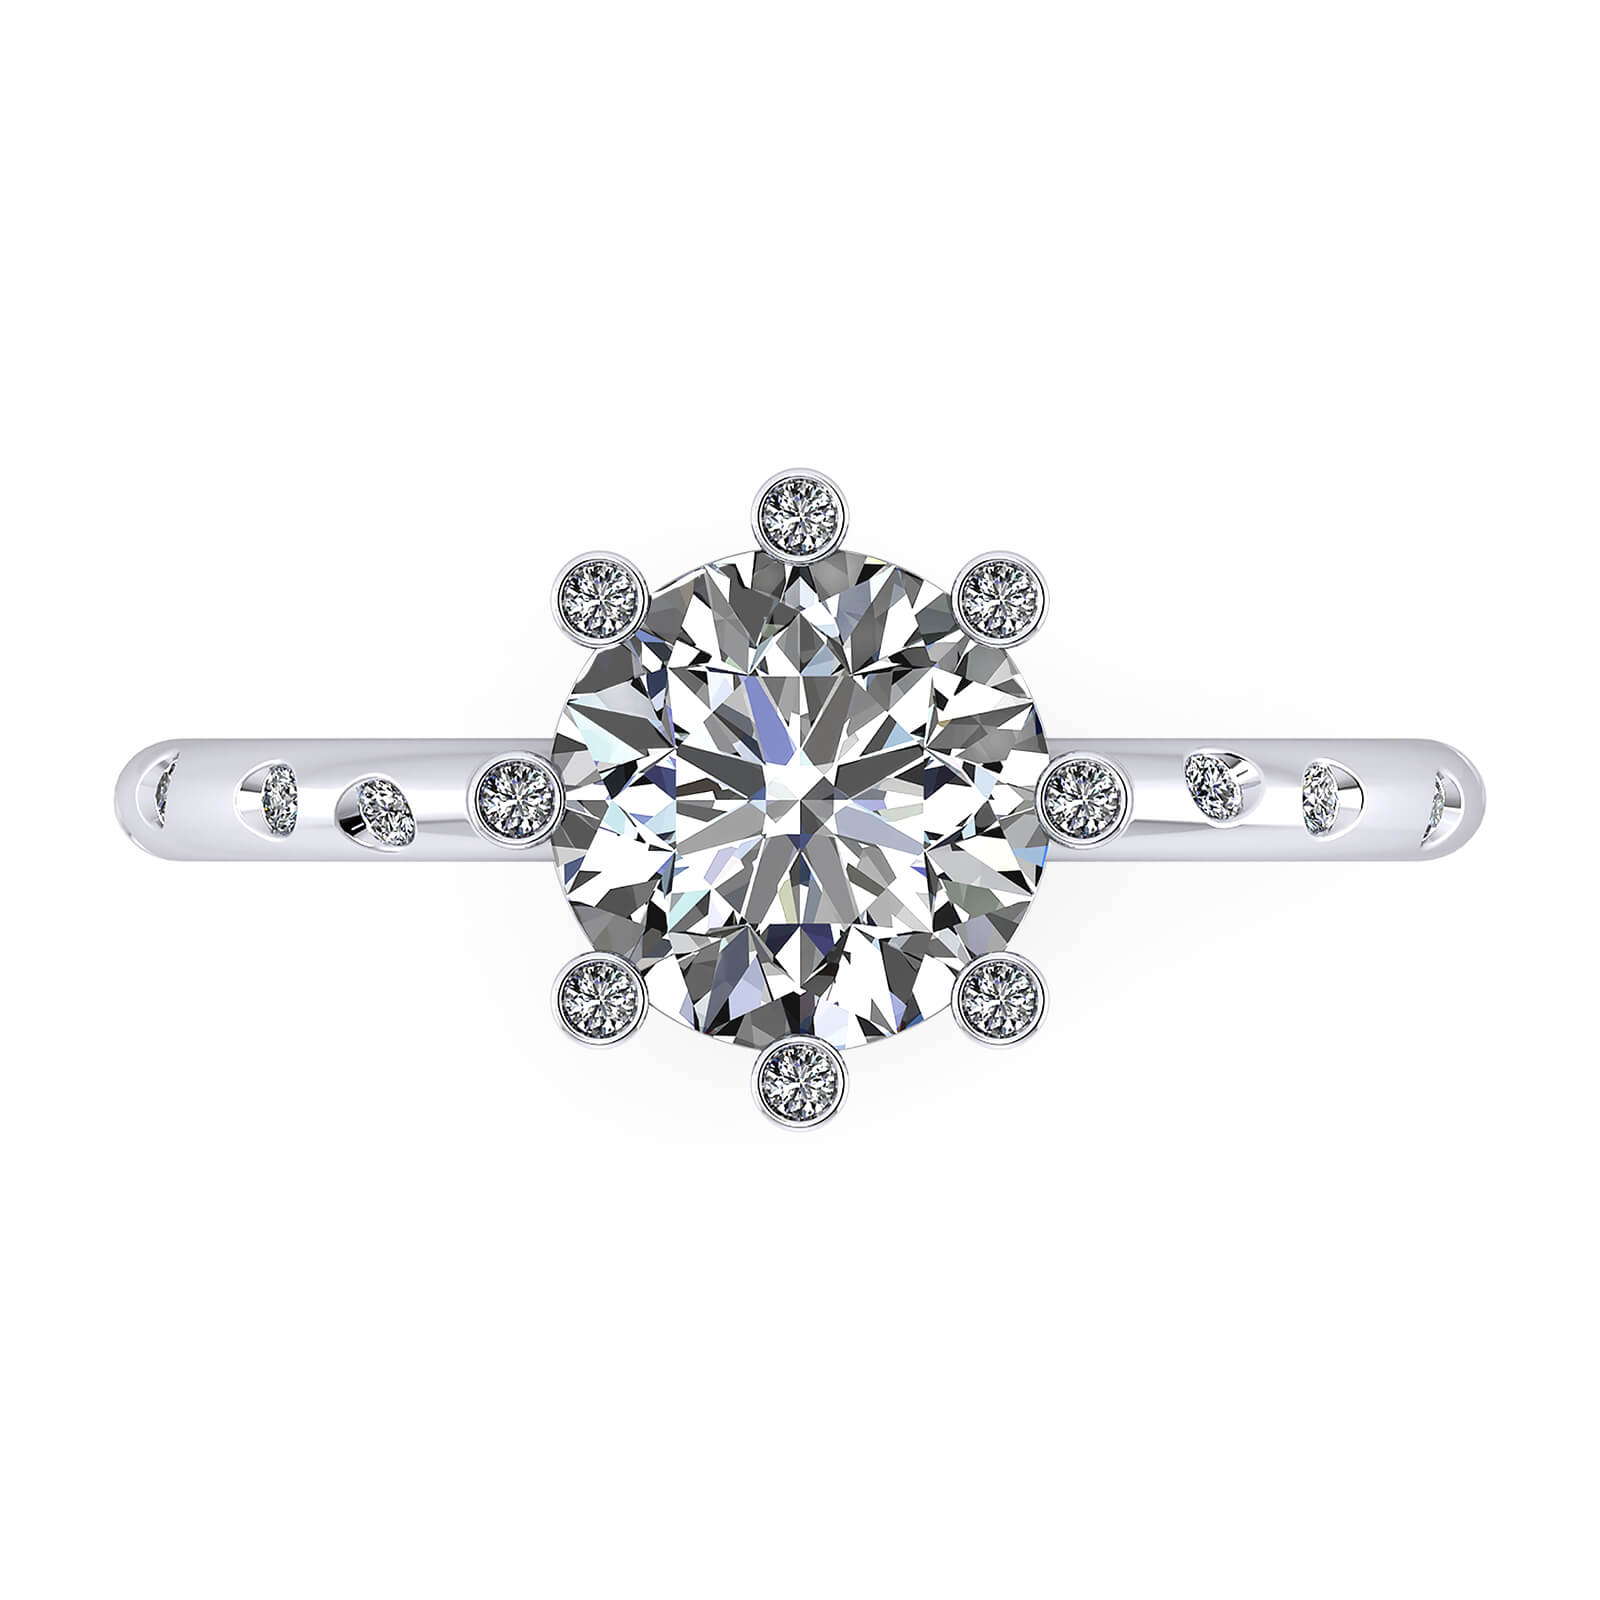 Engagement rings white gold with 16 diamonds and a central diamond